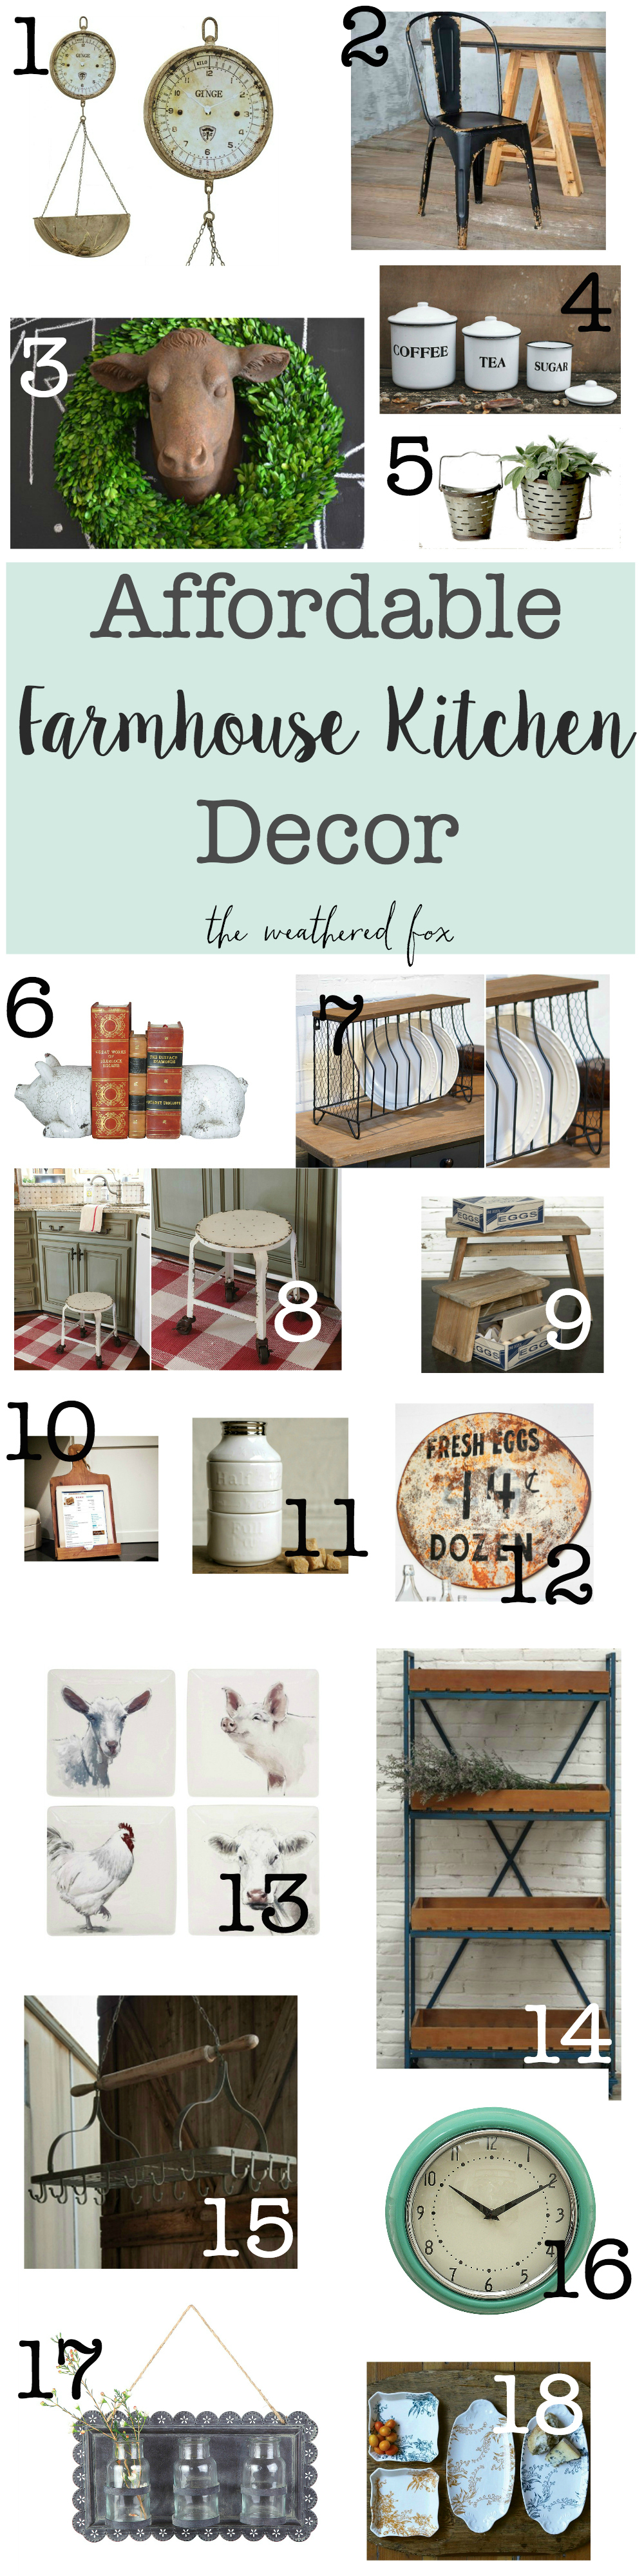 farmhouse kitchen decor with number